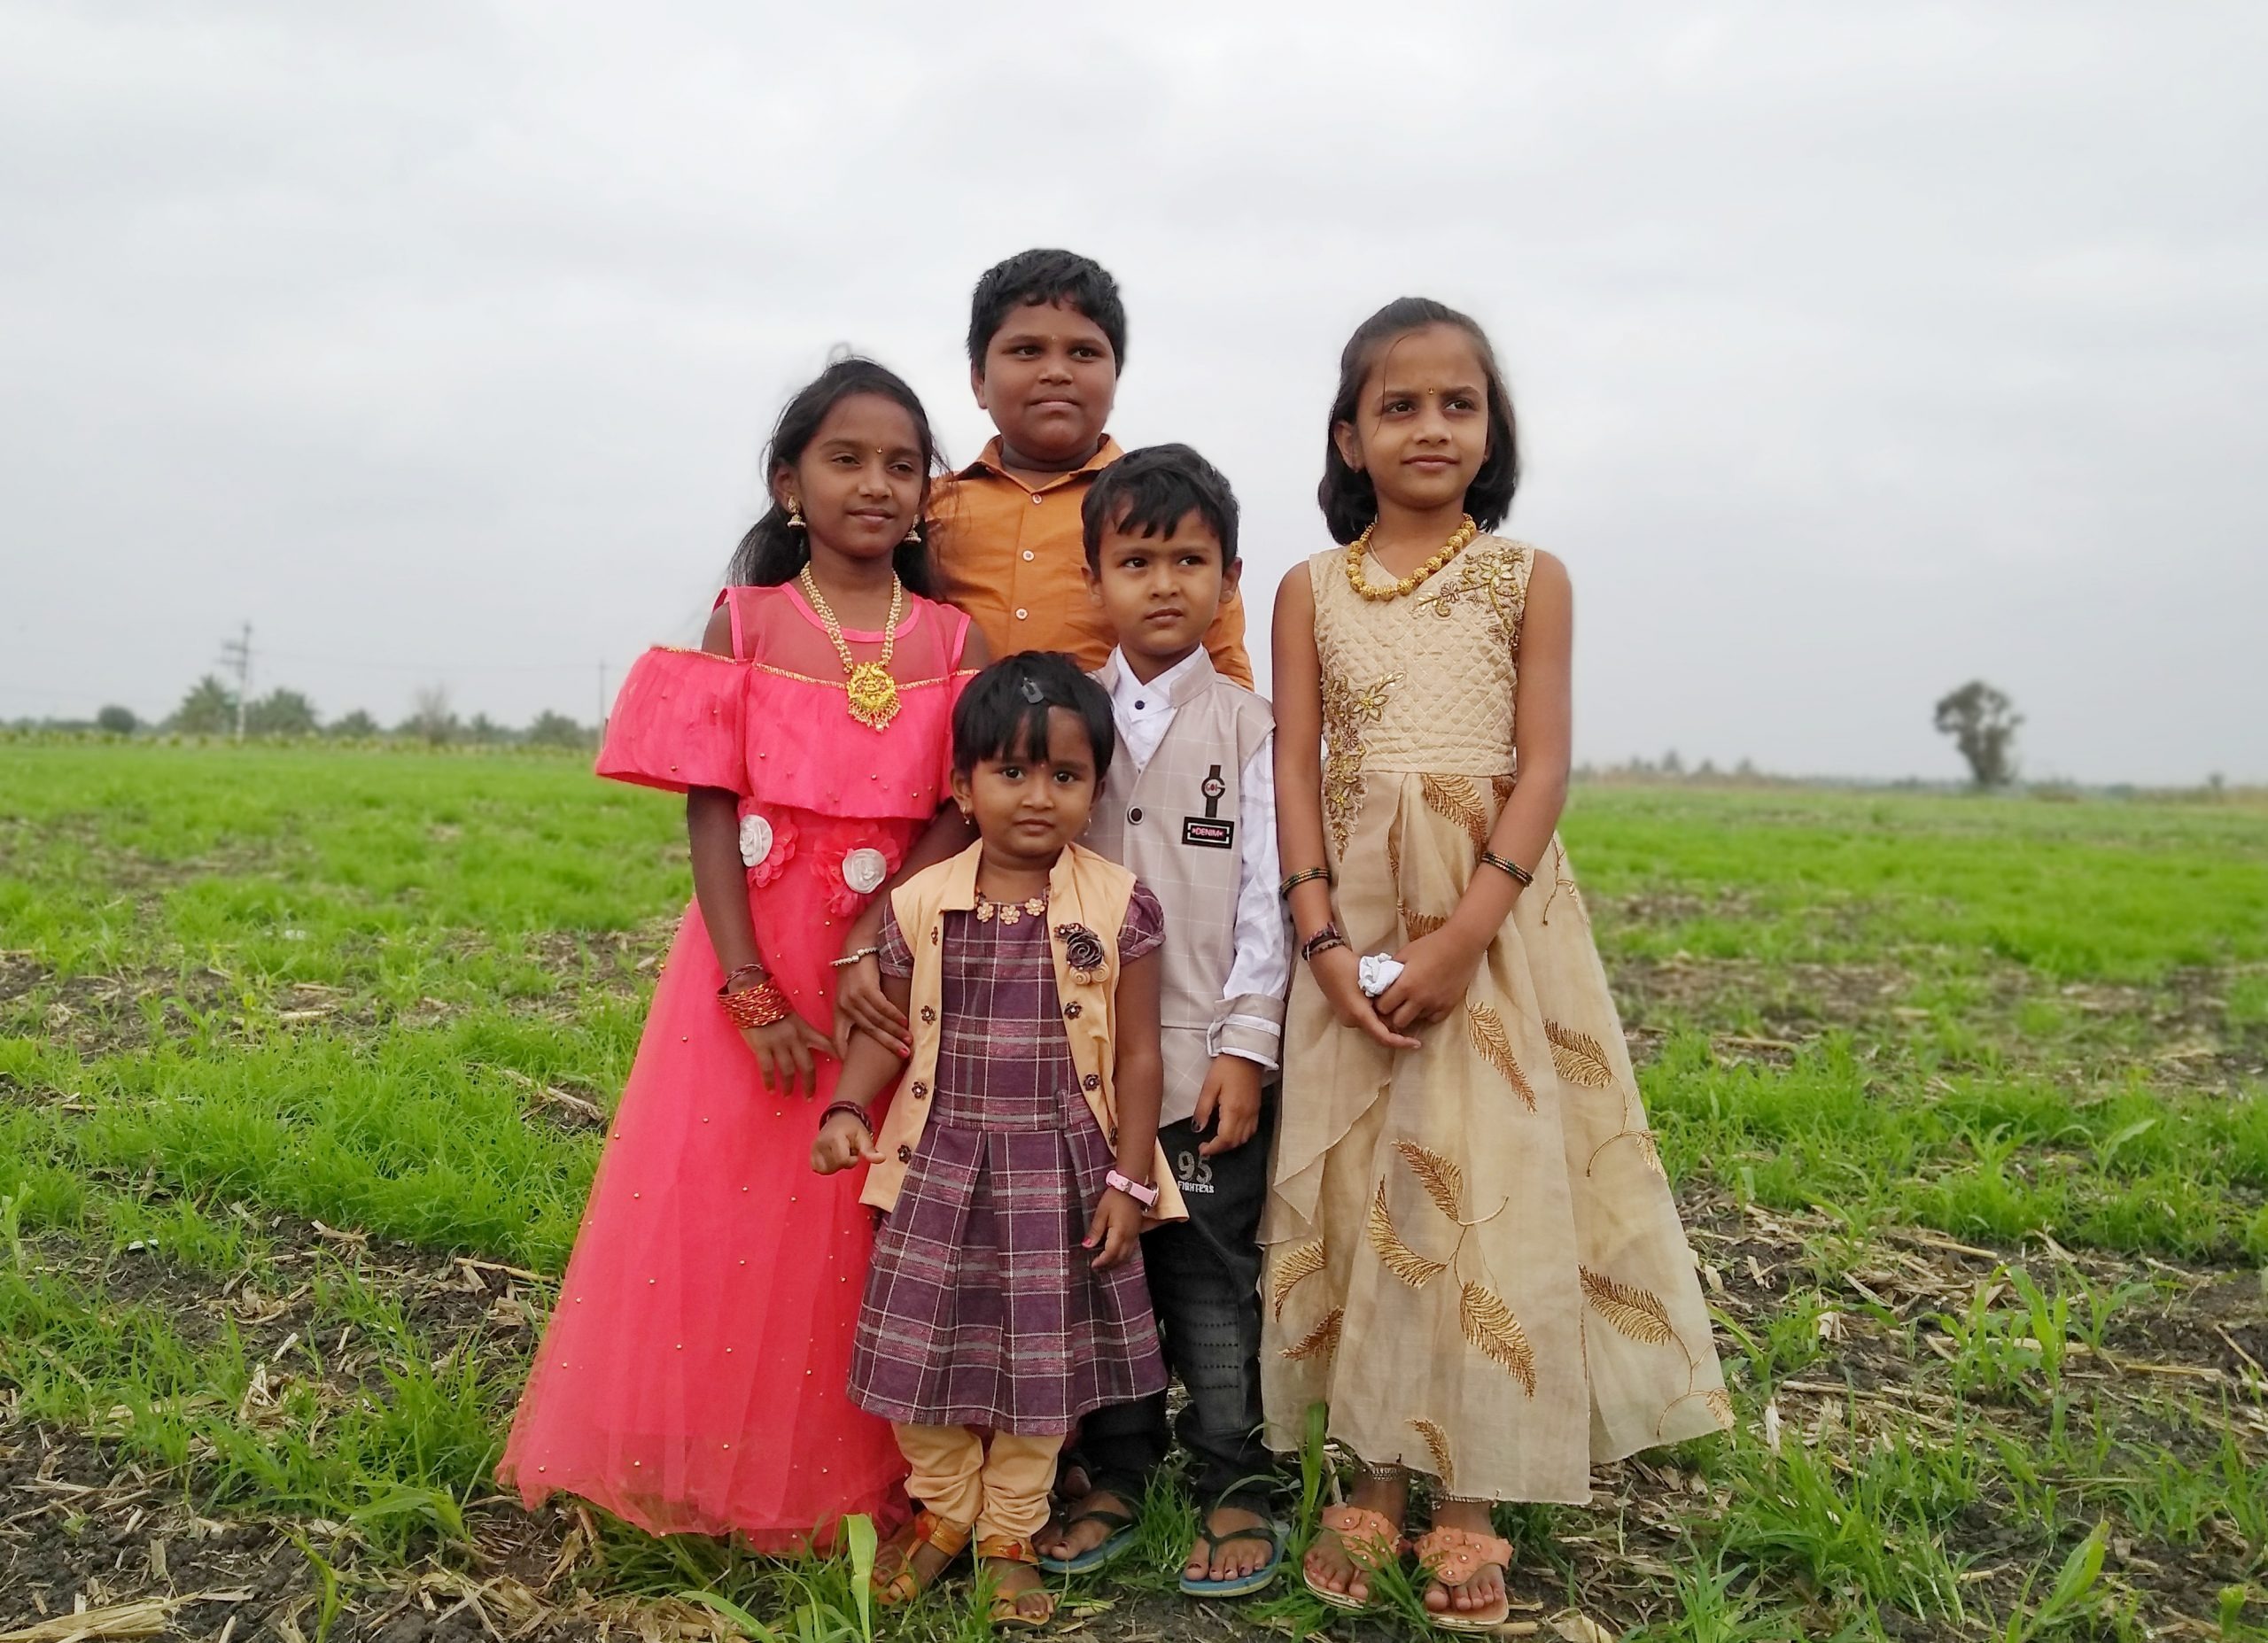 Children ready for a function